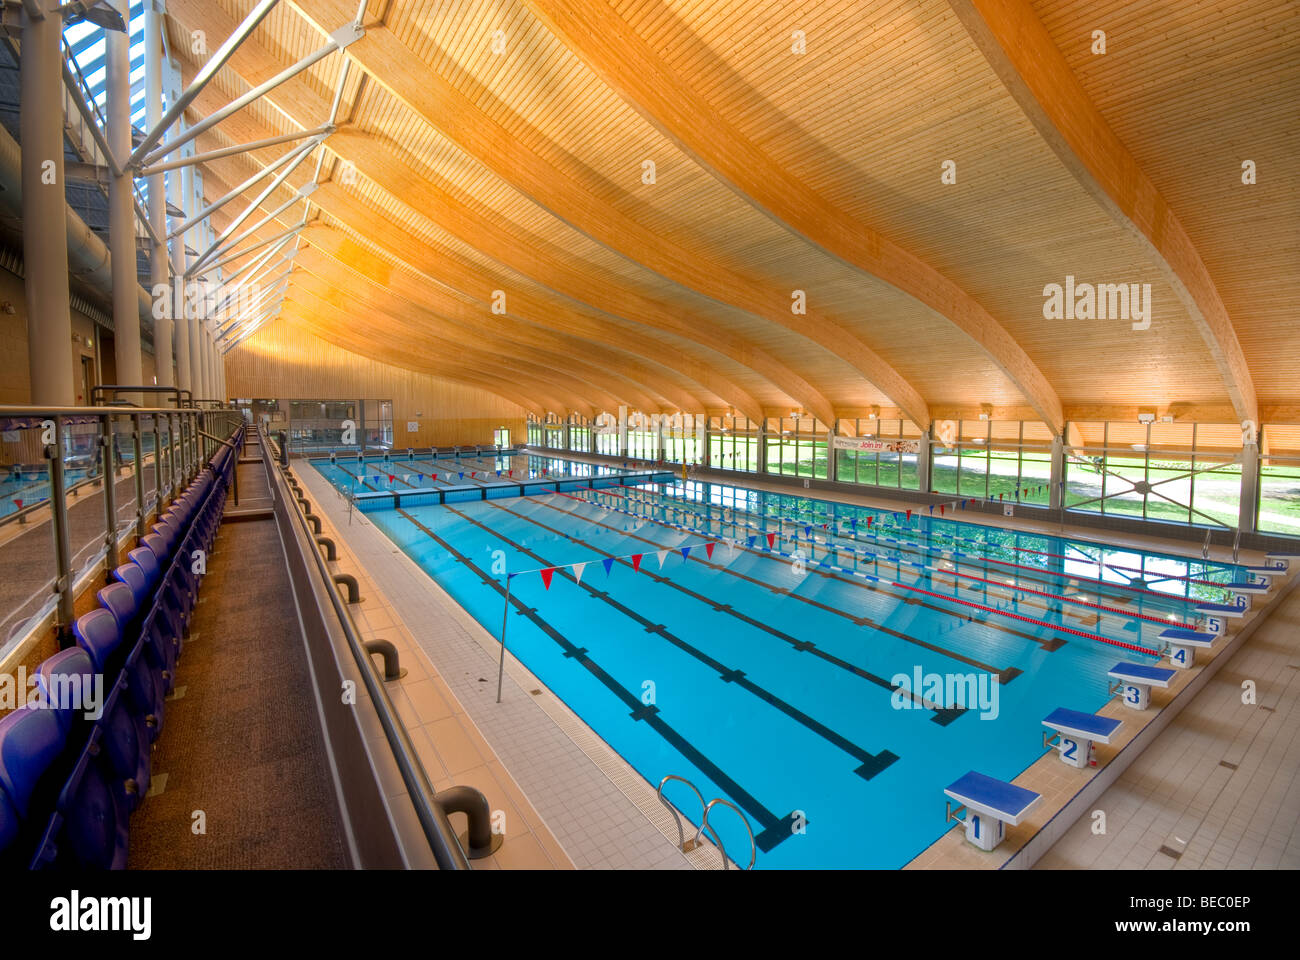 Swimming pool leisure centre indoor stock photos - How many olympic sized swimming pools in uk ...